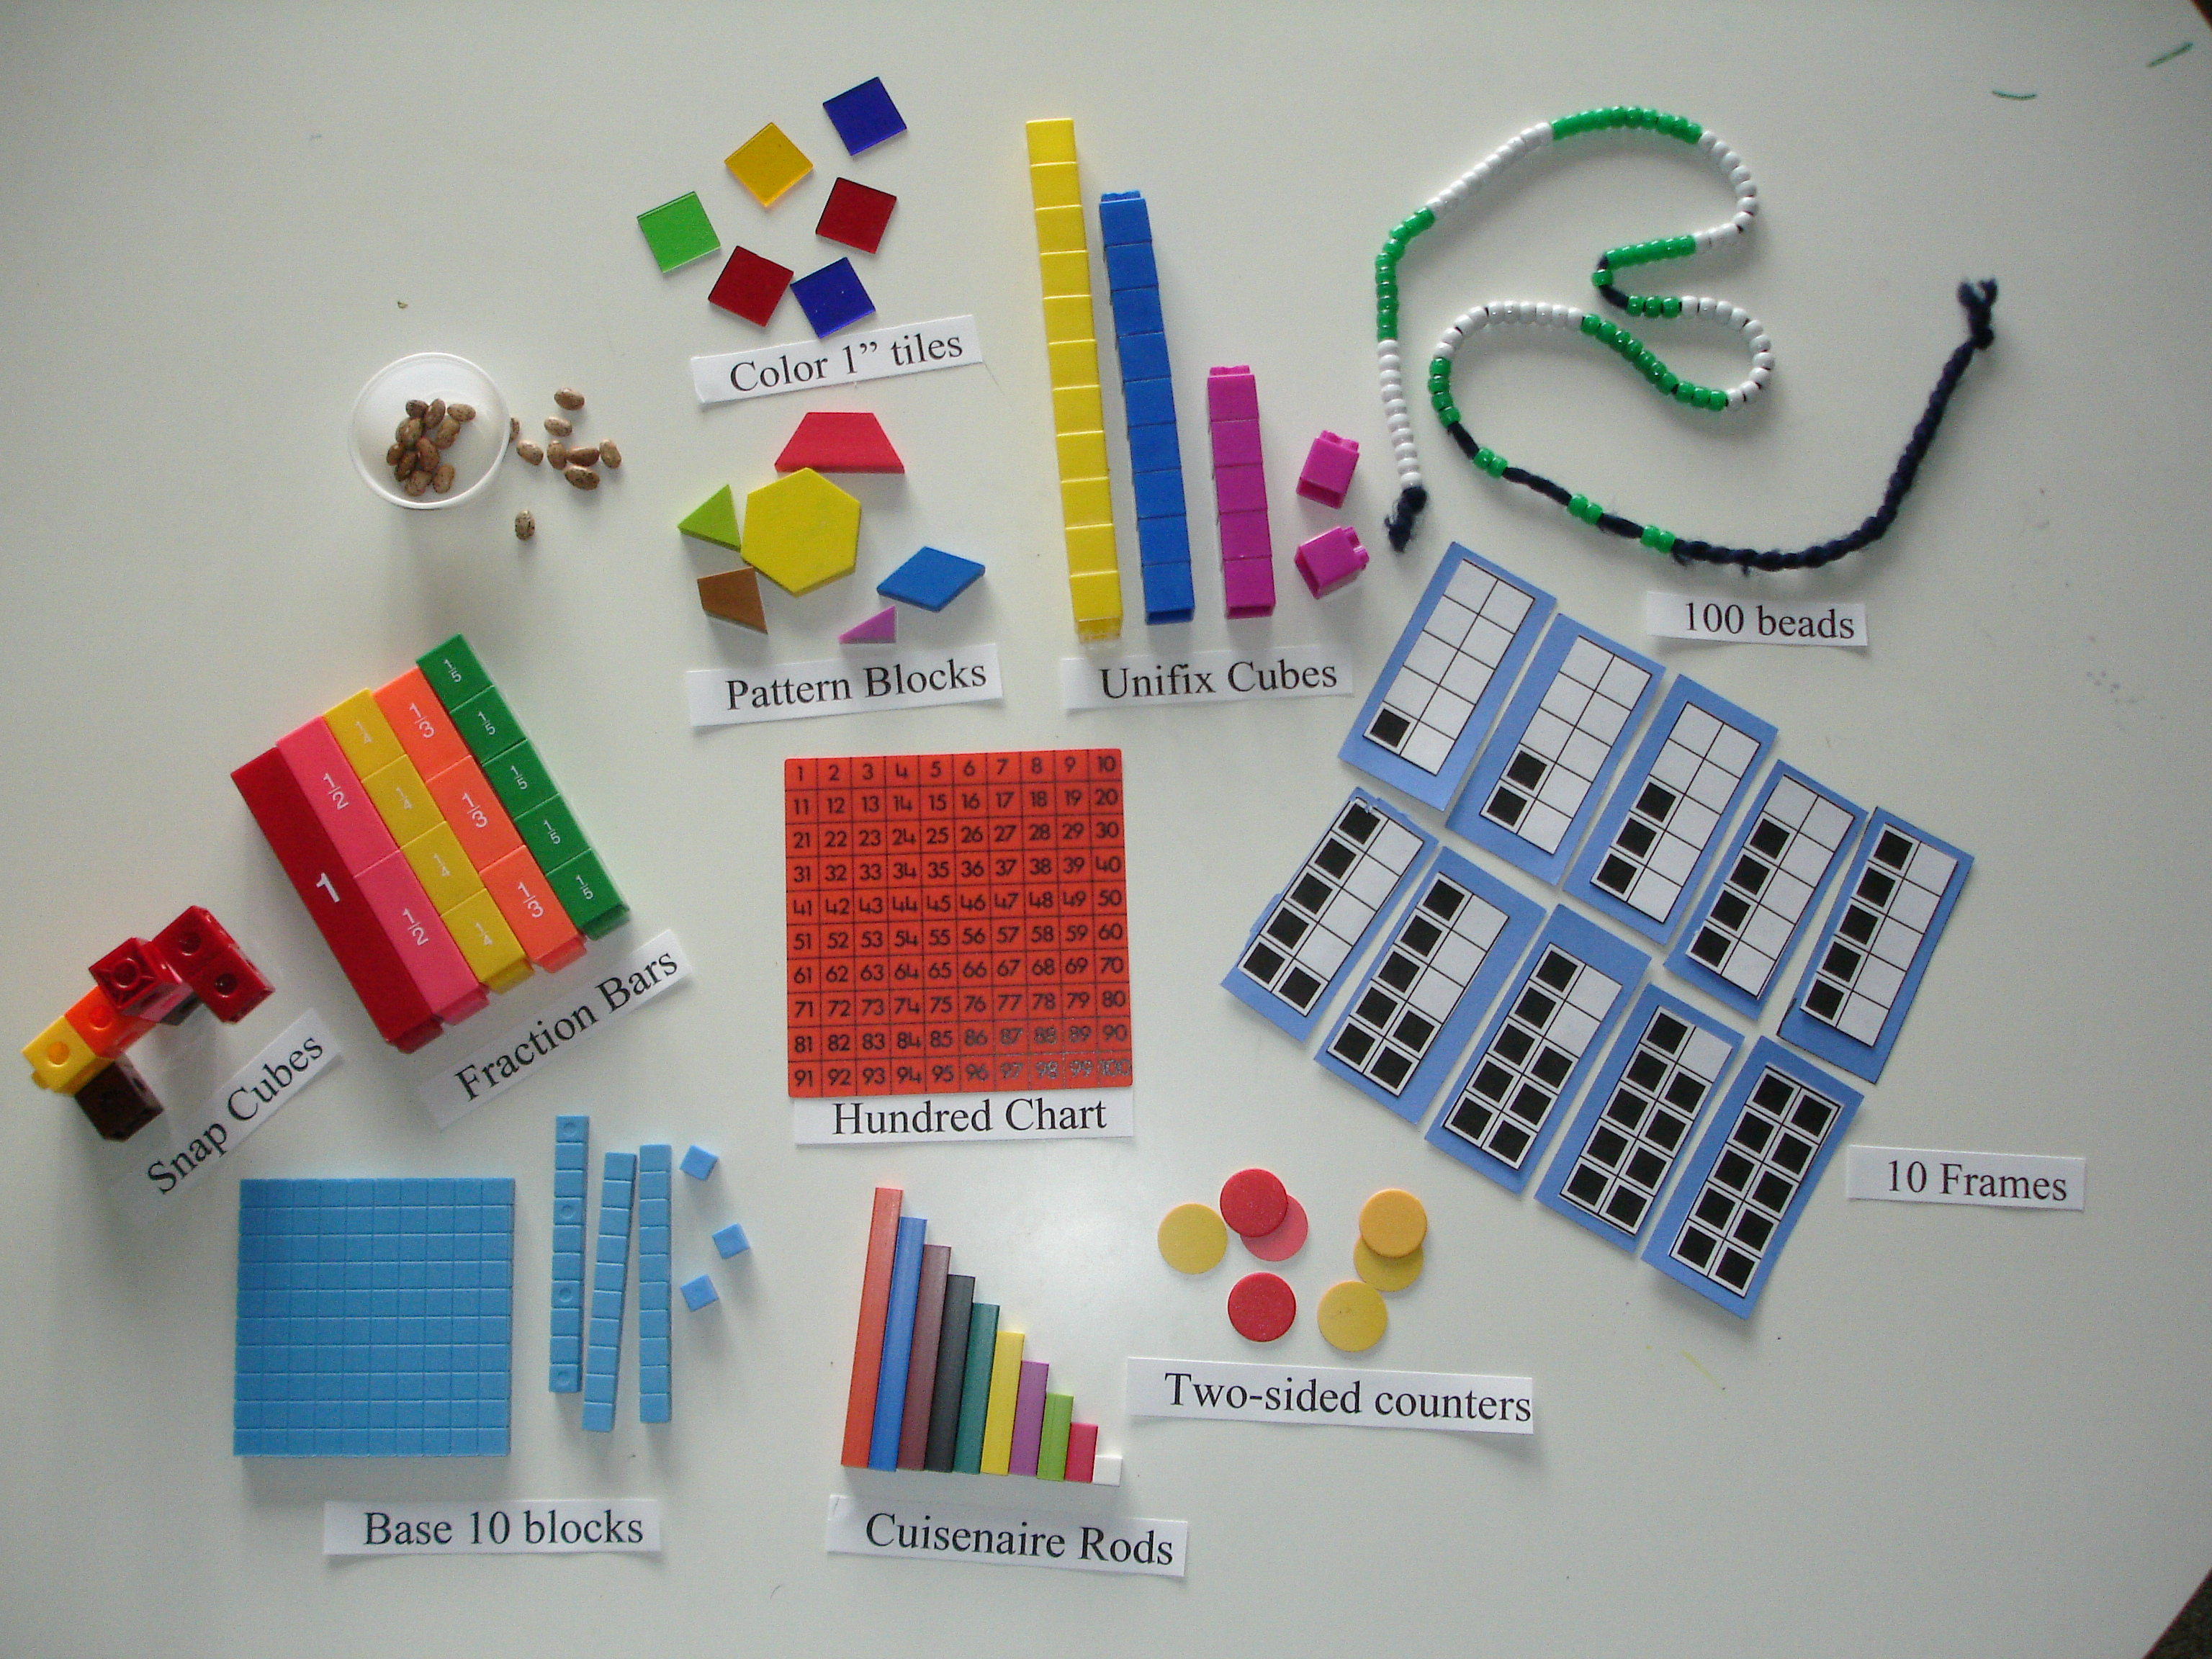 Some Common Tools Used In Elementary Mathematics